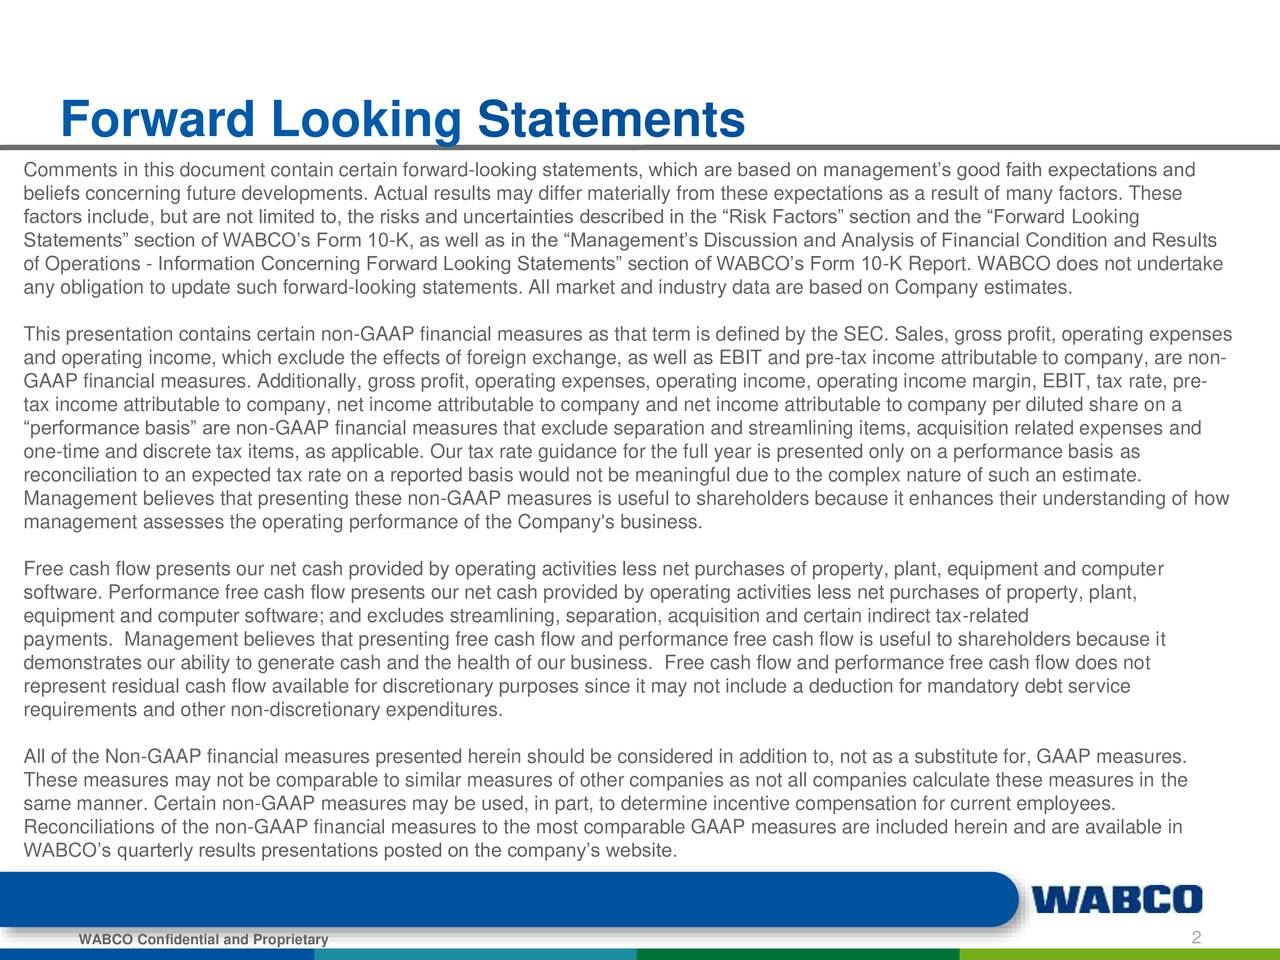 Comments in this document contain certain forward-looking statements, which are based on managements good faith expectations and beliefs concerning future developments. Actual results may differ materially from these expectations as a result of many factors. These factors include, but are not limited to, the risks and uncertainties described in the Risk Factors section and the Forward Looking Statements section of WABCOs Form 10-K, as well as in the Managements Discussion and Analysis of Financial Condition and Results of Operations - Information Concerning Forward Looking Statements section of WABCOs Form 10-K Report. WABCO does not undertake any obligation to update such forward-looking statements. All market and industry data are based on Company estimates. This presentation contains certain non-GAAP financial measures as that term is defined by the SEC. Sales, gross profit, operating expenses and operating income, which exclude the effects of foreign exchange, as well as EBIT and pre-tax income attributable to company, are non- GAAP financial measures. Additionally, gross profit, operating expenses, operating income, operating income margin, EBIT, tax rate, pre- tax income attributable to company, net income attributable to company and net income attributable to company per diluted share on a performance basis are non-GAAP financial measures that exclude separation and streamlining items, acquisition related expenses and one-time and discrete tax items, as applicable. Our tax rate guidance for the full year is presented only on a performance basis as reconciliation to an expected tax rate on a reported basis would not be meaningful due to the complex nature of such an estimate. Management believes that presenting these non-GAAP measures is useful to shareholders because it enhances their understanding of how management assesses the operating performance of the Company's business. Free cash flow presents our net cash provided by operating activities less net purchases of property, plant, equipment and computer software. Performance free cash flow presents our net cash provided by operating activities less net purchases of property, plant, equipment and computer software; and excludes streamlining, separation, acquisition and certain indirect tax-related payments. Management believes that presenting free cash flow and performance free cash flow is useful to shareholders because it demonstrates our ability to generate cash and the health of our business. Free cash flow and performance free cash flow does not represent residual cash flow available for discretionary purposes since it may not include a deduction for mandatory debt service requirements and other non-discretionary expenditures. All of the Non-GAAP financial measures presented herein should be considered in addition to, not as a substitute for, GAAP measures. These measures may not be comparable to similar measures of other companies as not all companies calculate these measures in the same manner. Certain non-GAAP measures may be used, in part, to determine incentive compensation for current employees. Reconciliations of the non-GAAP financial measures to the most comparable GAAP measures are included herein and are available in WABCOs quarterly results presentations posted on the companys website. WABCO Confidential and Proprietary 2